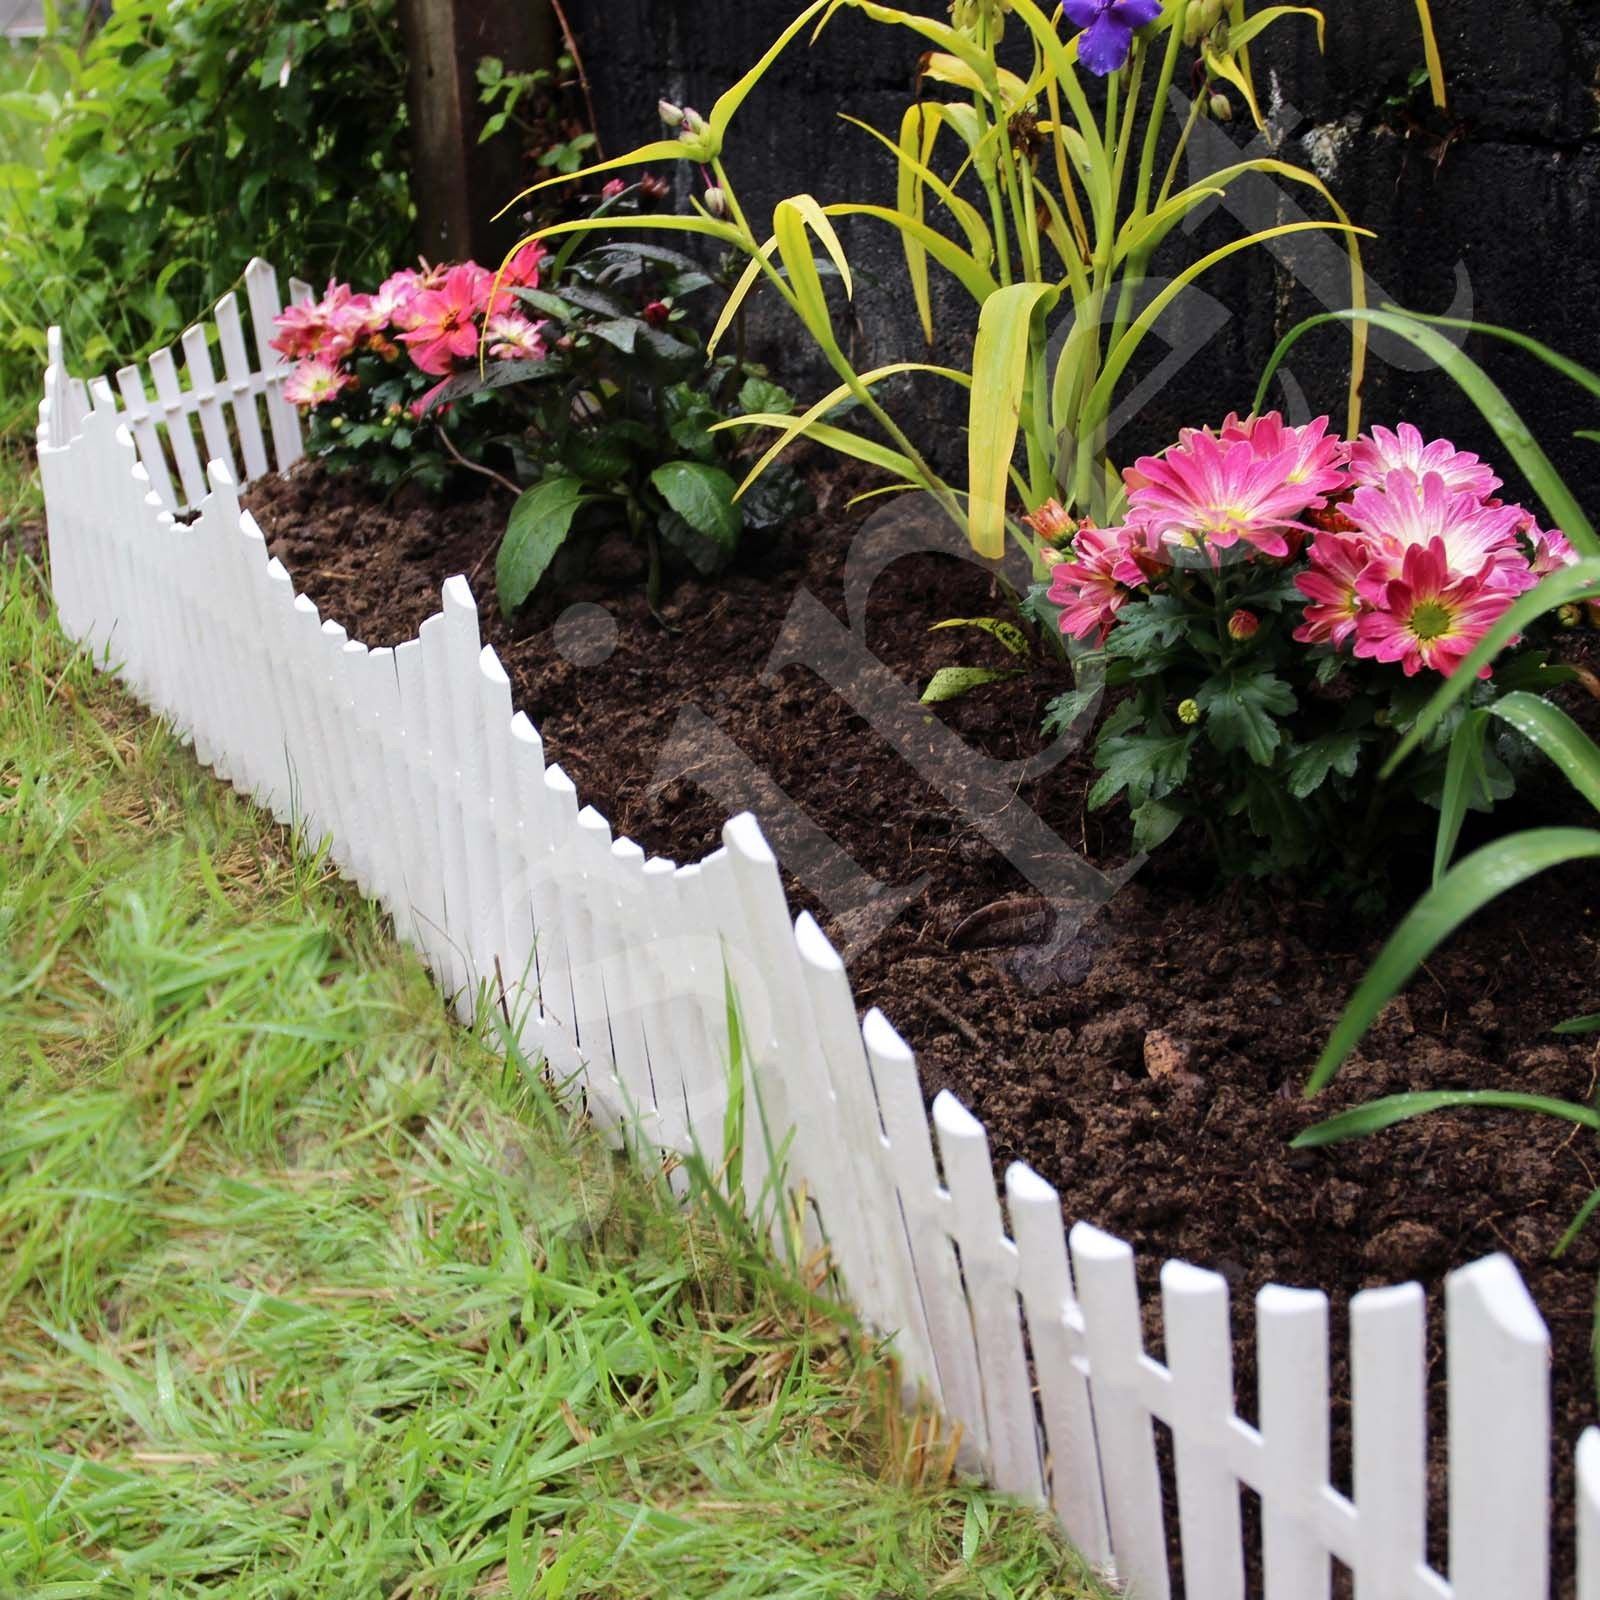 12 White Flexible Plastic Garden Picket Fence Lawn Grass Edge Edging Border  7.32m